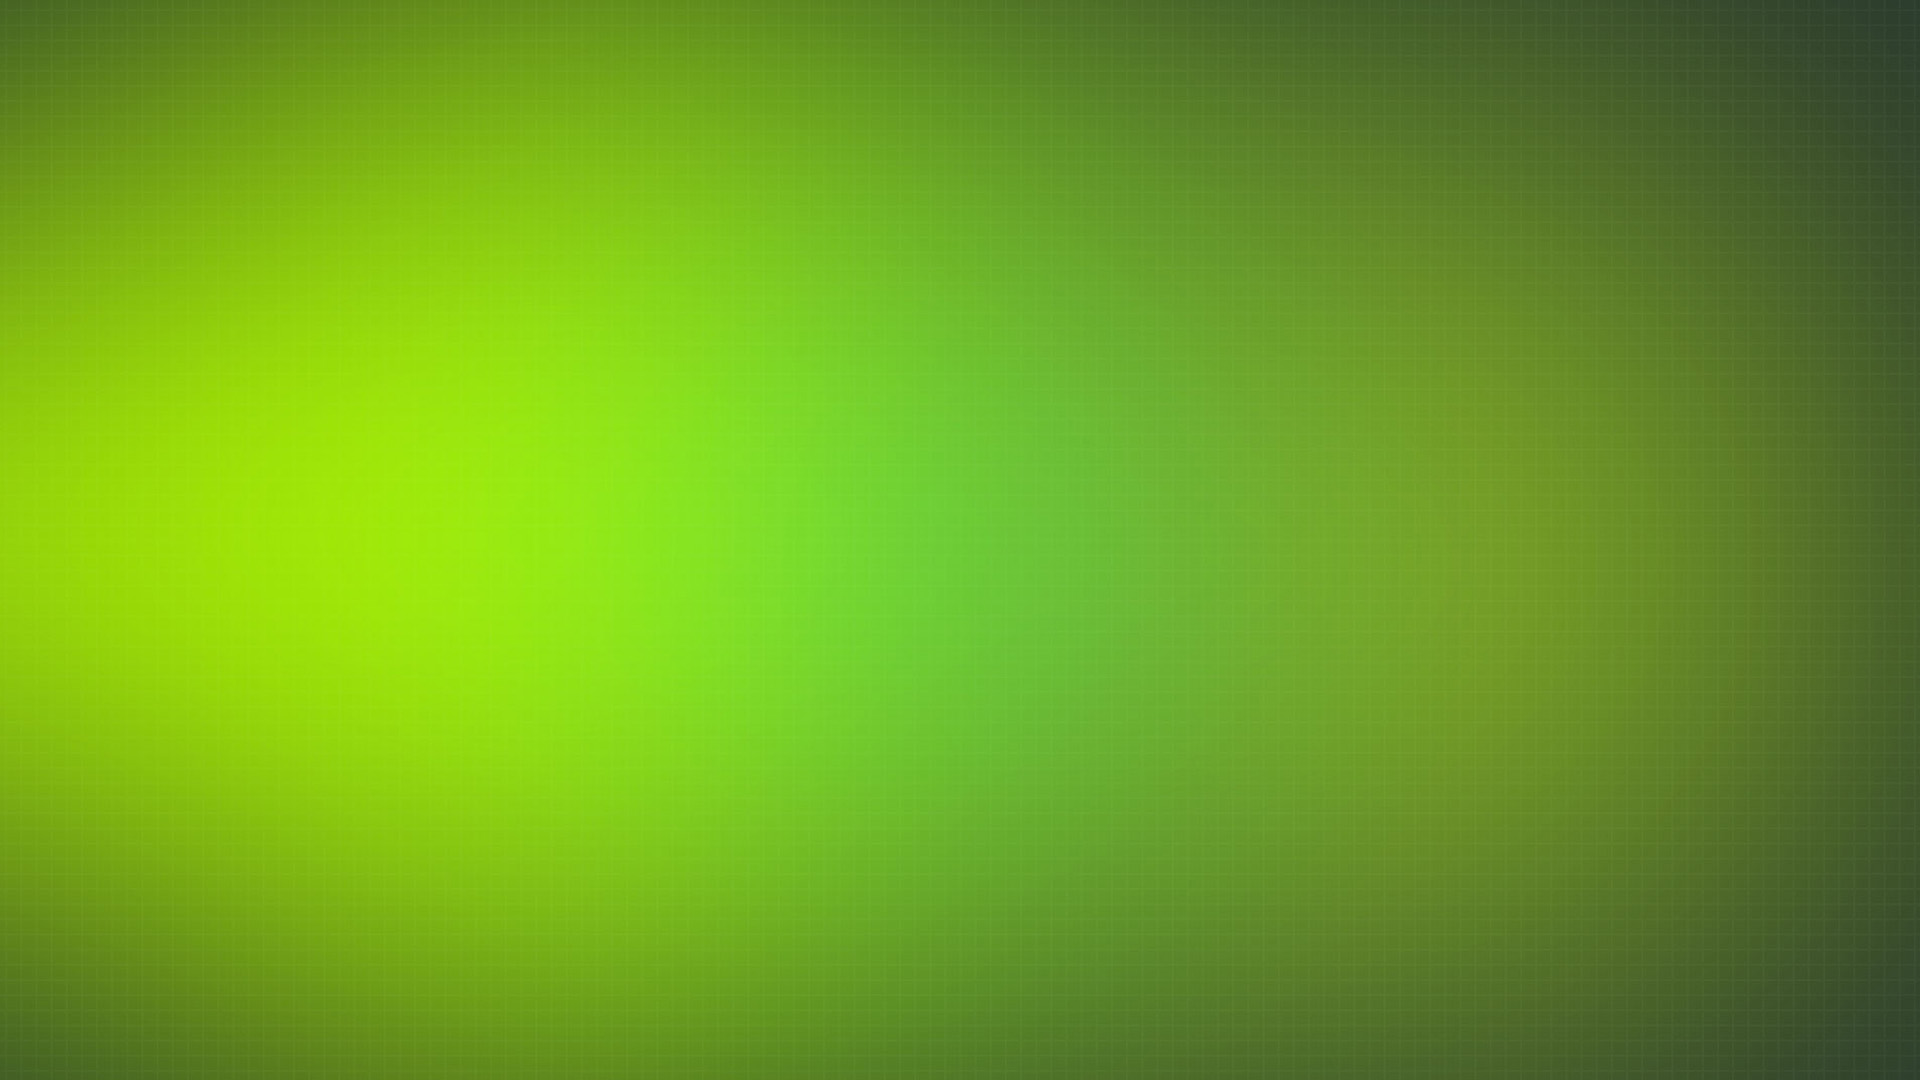 Green Gradient Background Wallpaper D Ktc Fluid Controld Ktc Fluid Control